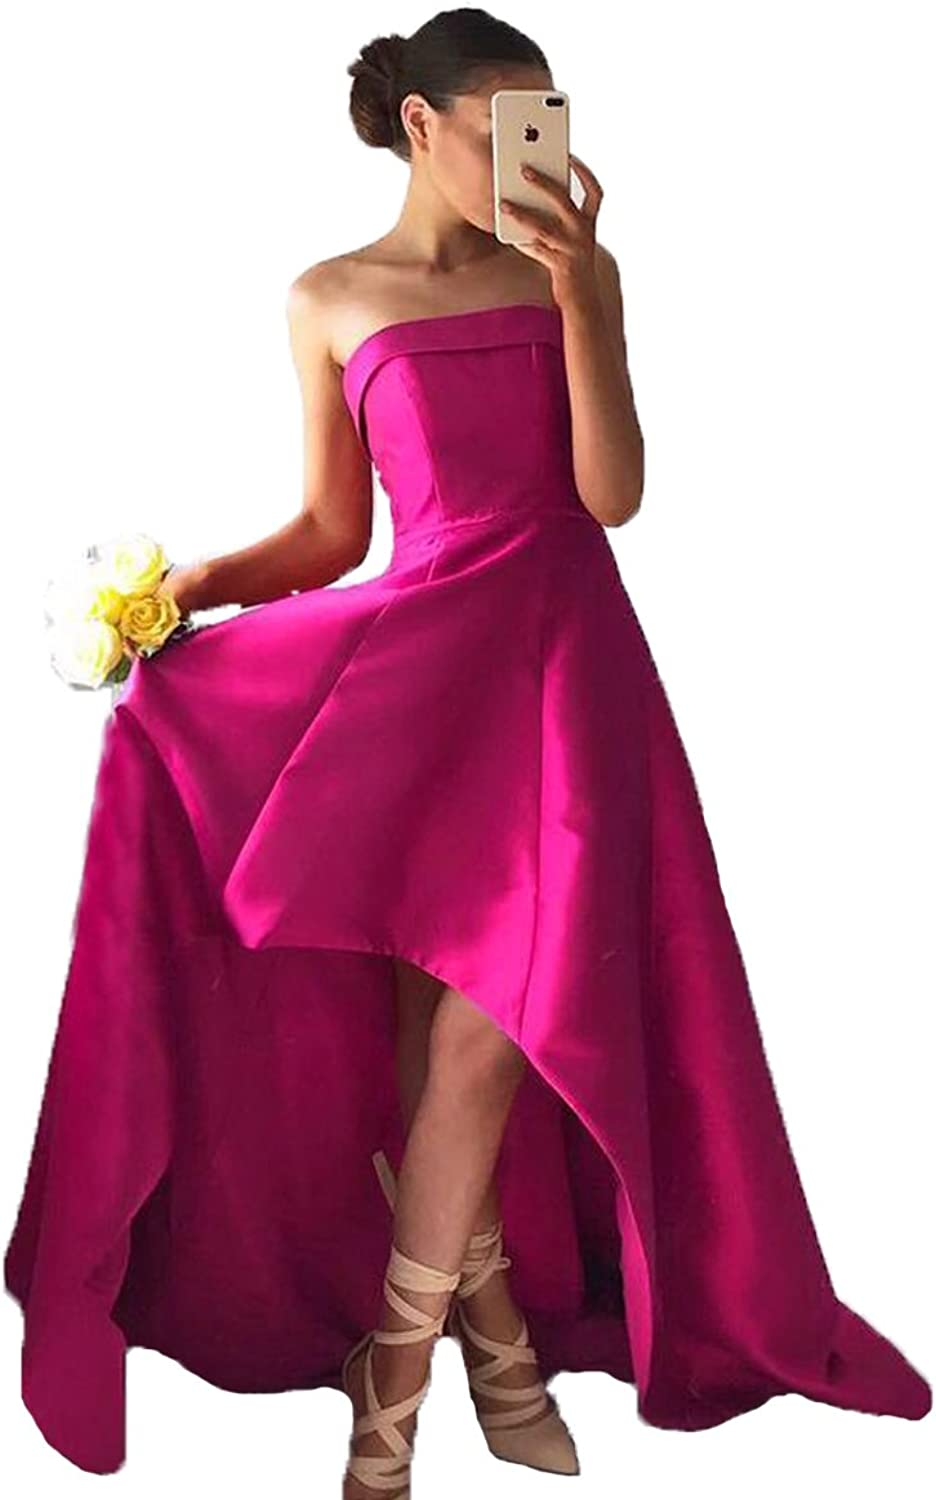 XingMeng Strapless Satin High Low Prom Homecoming Bridesmaid Dresses for Women